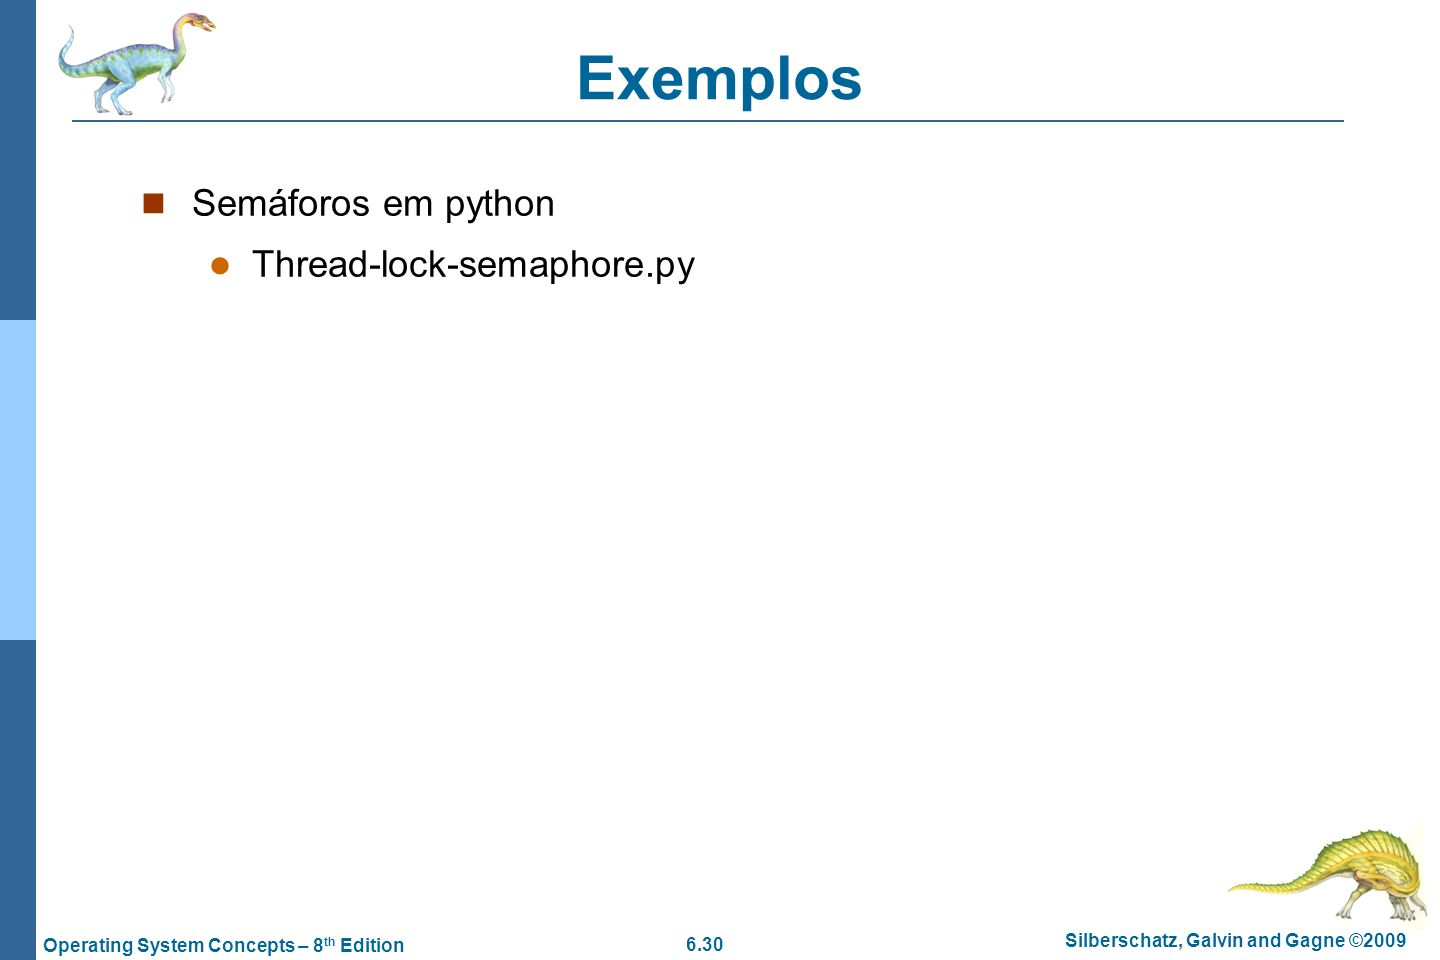 6.30 Silberschatz, Galvin and Gagne ©2009 Operating System Concepts – 8 th Edition Exemplos Semáforos em python Thread-lock-semaphore.py